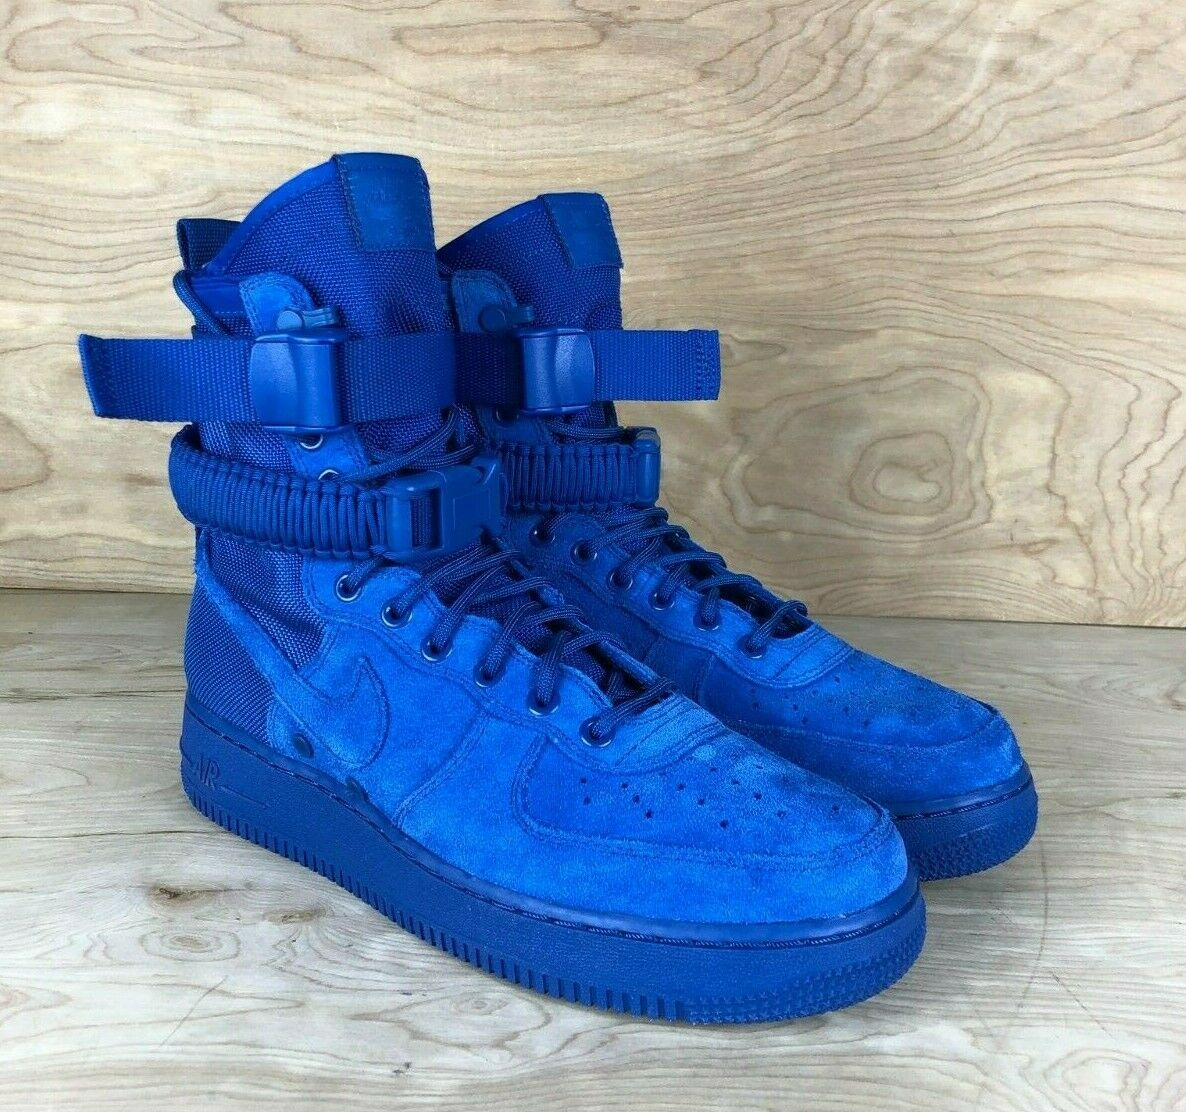 MEN'S Nike SF AF1 Royal blueee suede Athletic Sneakers 864024 401 boots Multi Size